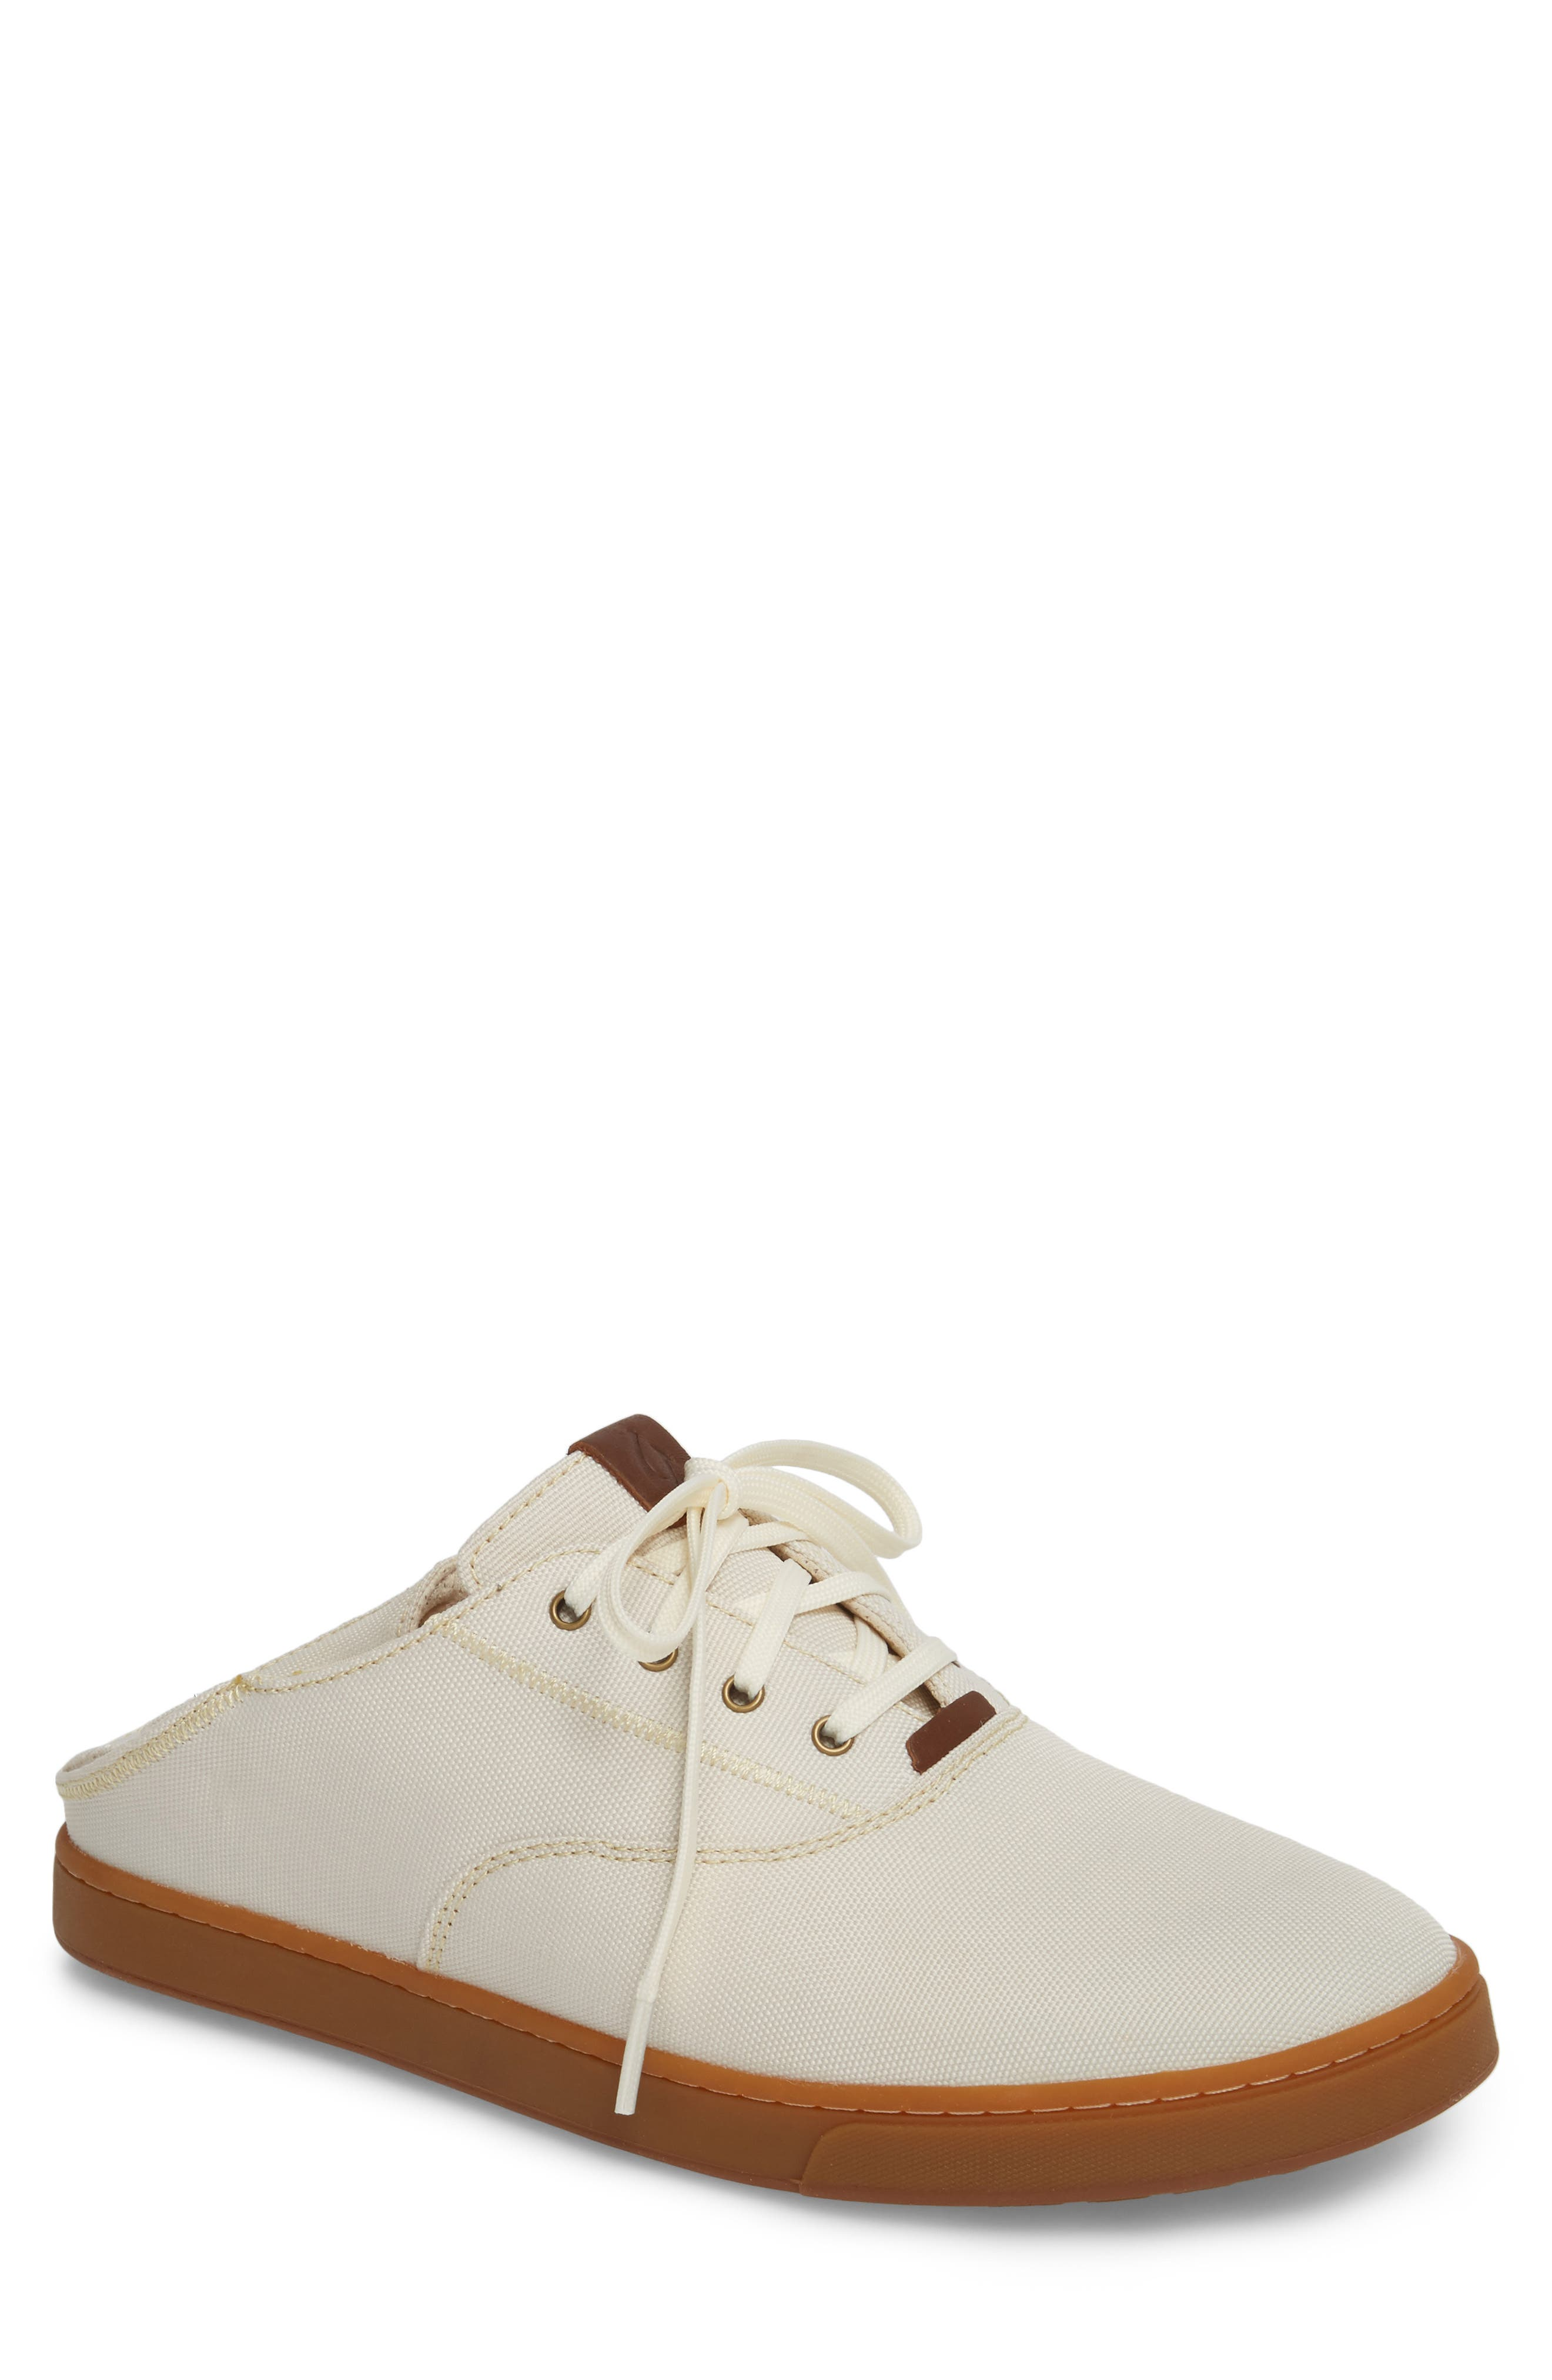 Kahu Collapsible Lace-Up Sneaker,                             Main thumbnail 1, color,                             OFF WHITE/ TOFFEE